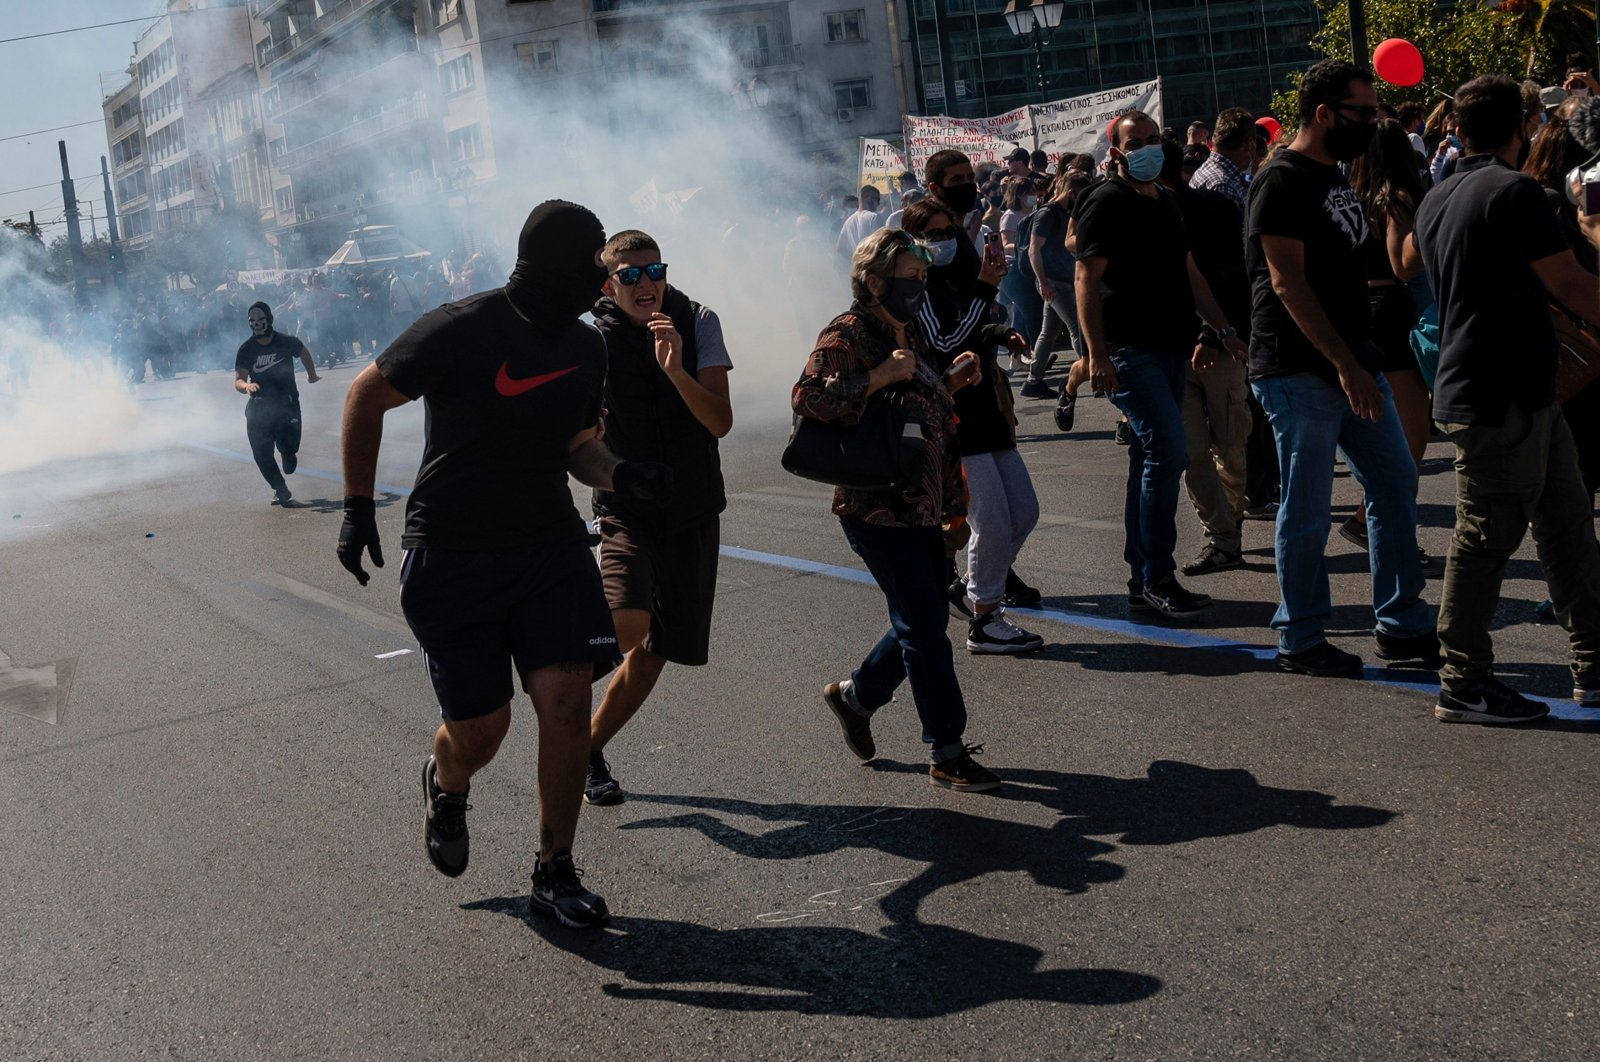 Protesters run from tear gas during a demonstration against the risks of the coronavirus in schools, in Athens, Greece, Oct. 1, 2020. (AFP Photo)